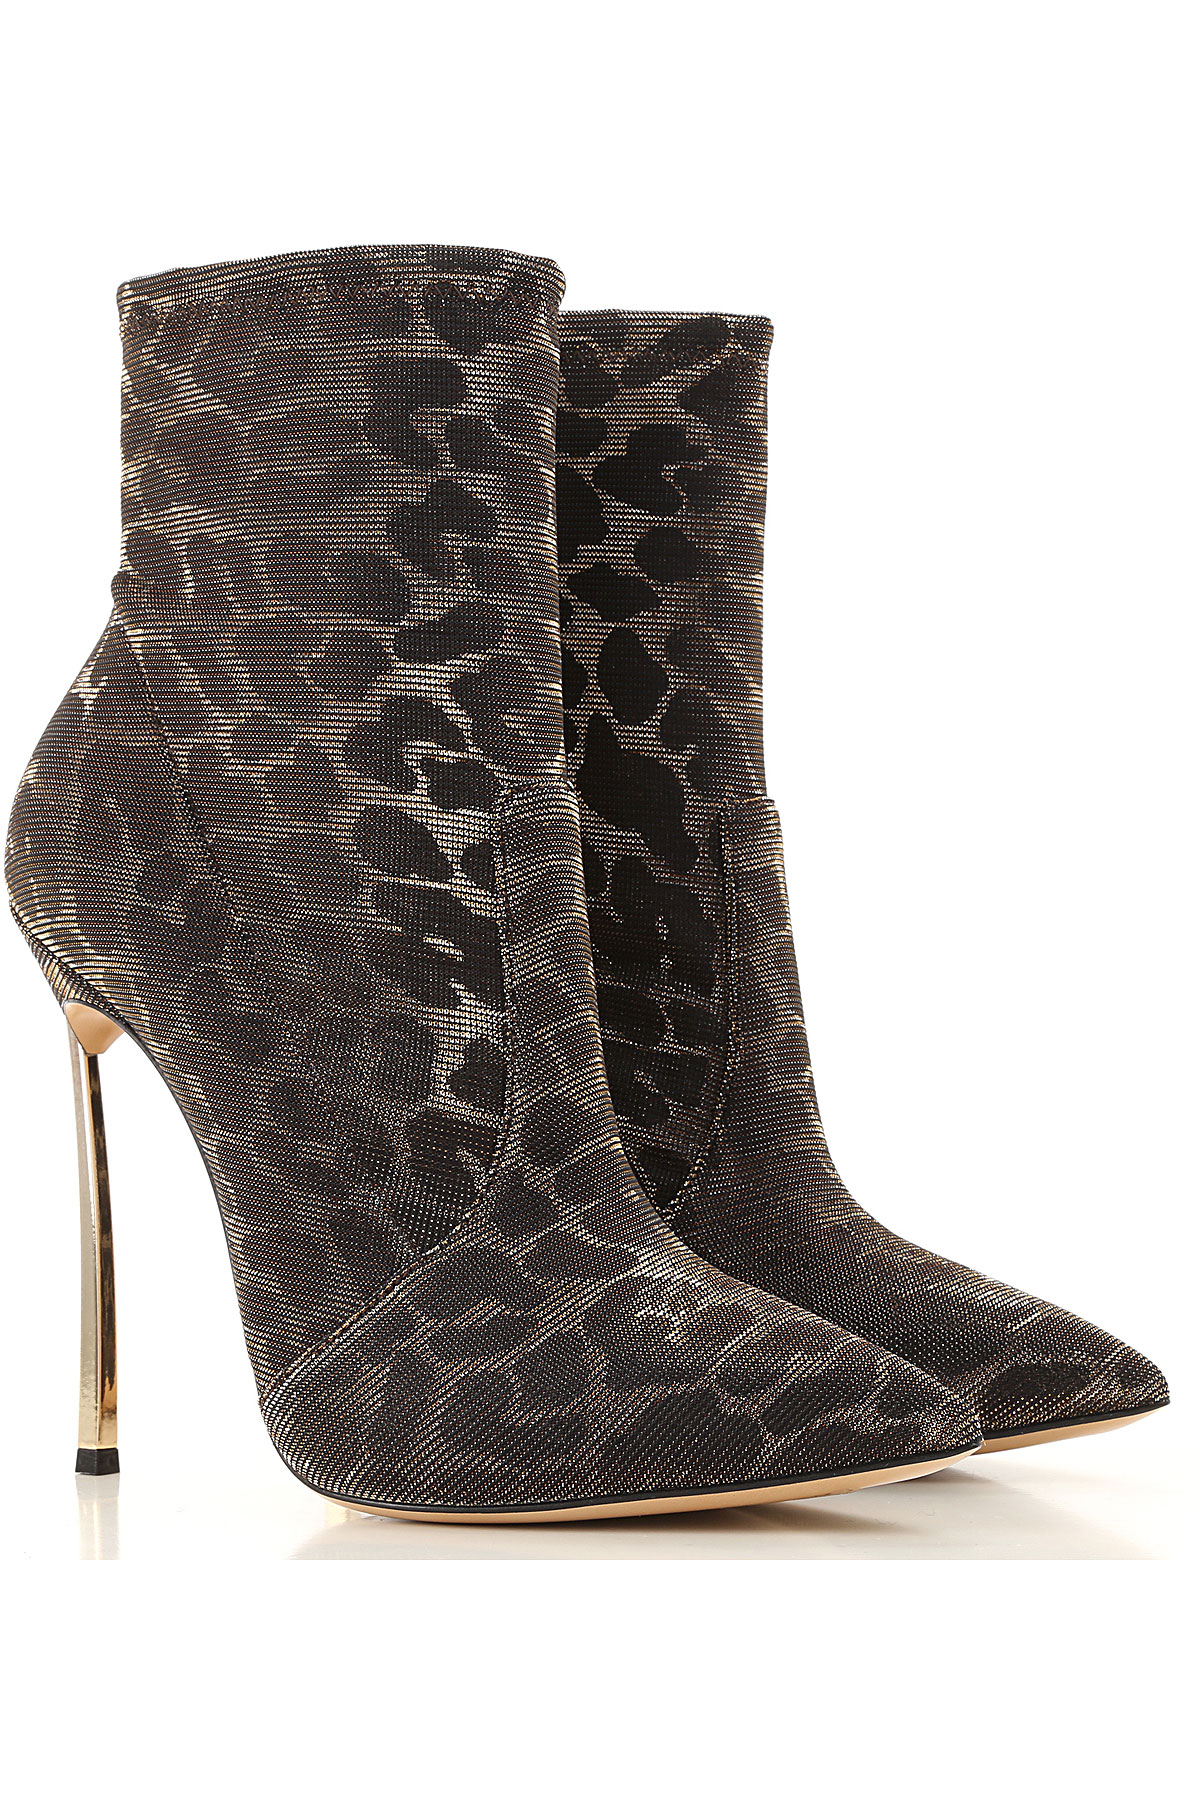 Casadei Boots for Women, Booties On Sale, Leopard Brown, Leather, 2019, 7 8 9